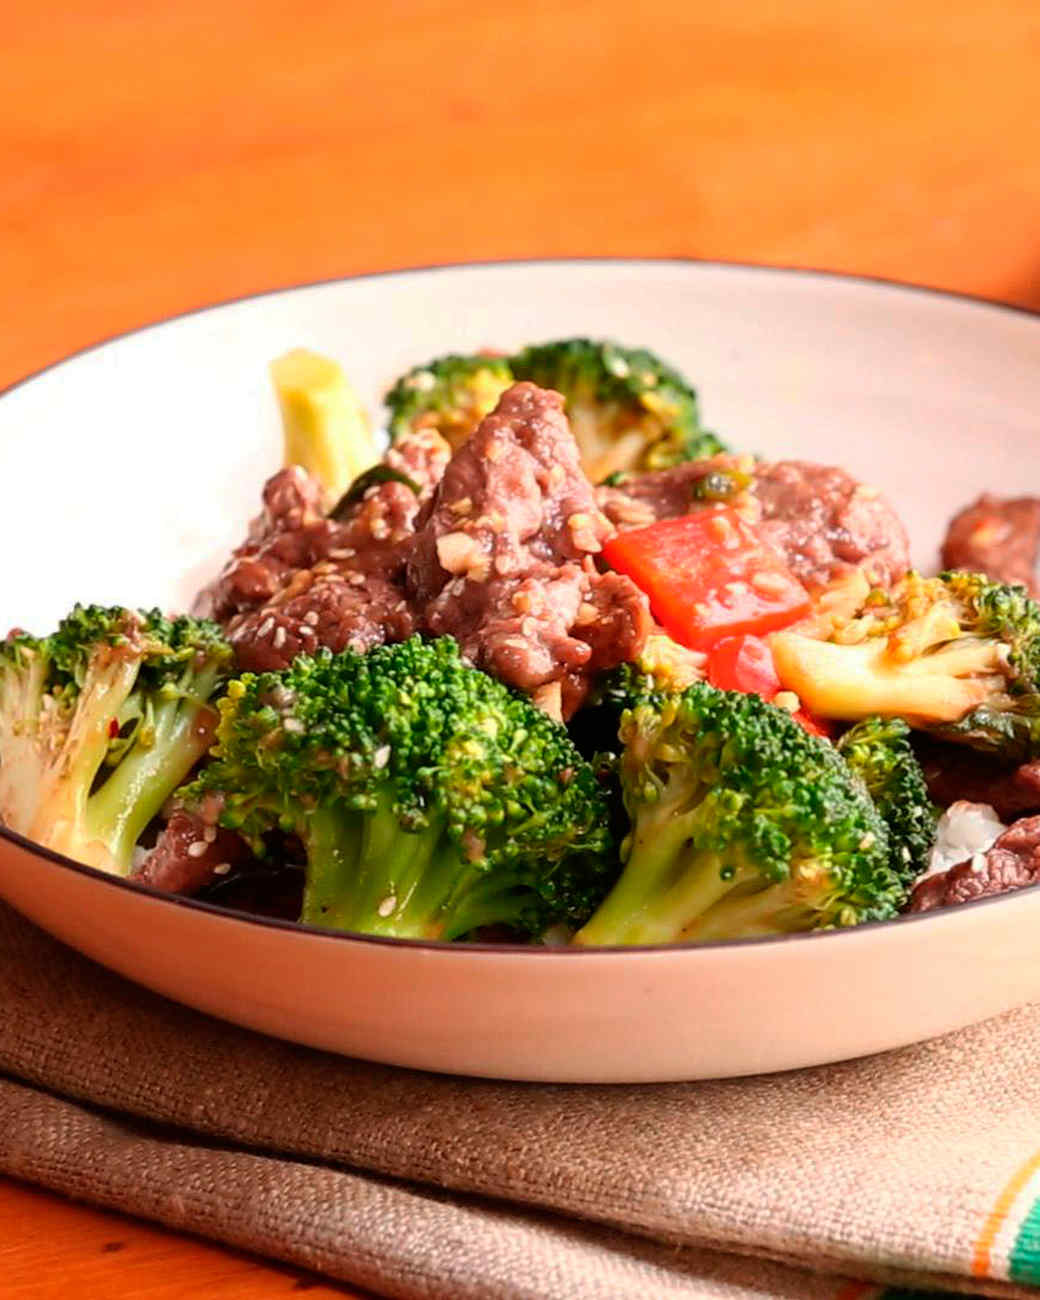 emeril-beef-broccoli-bowl-0415.jpg